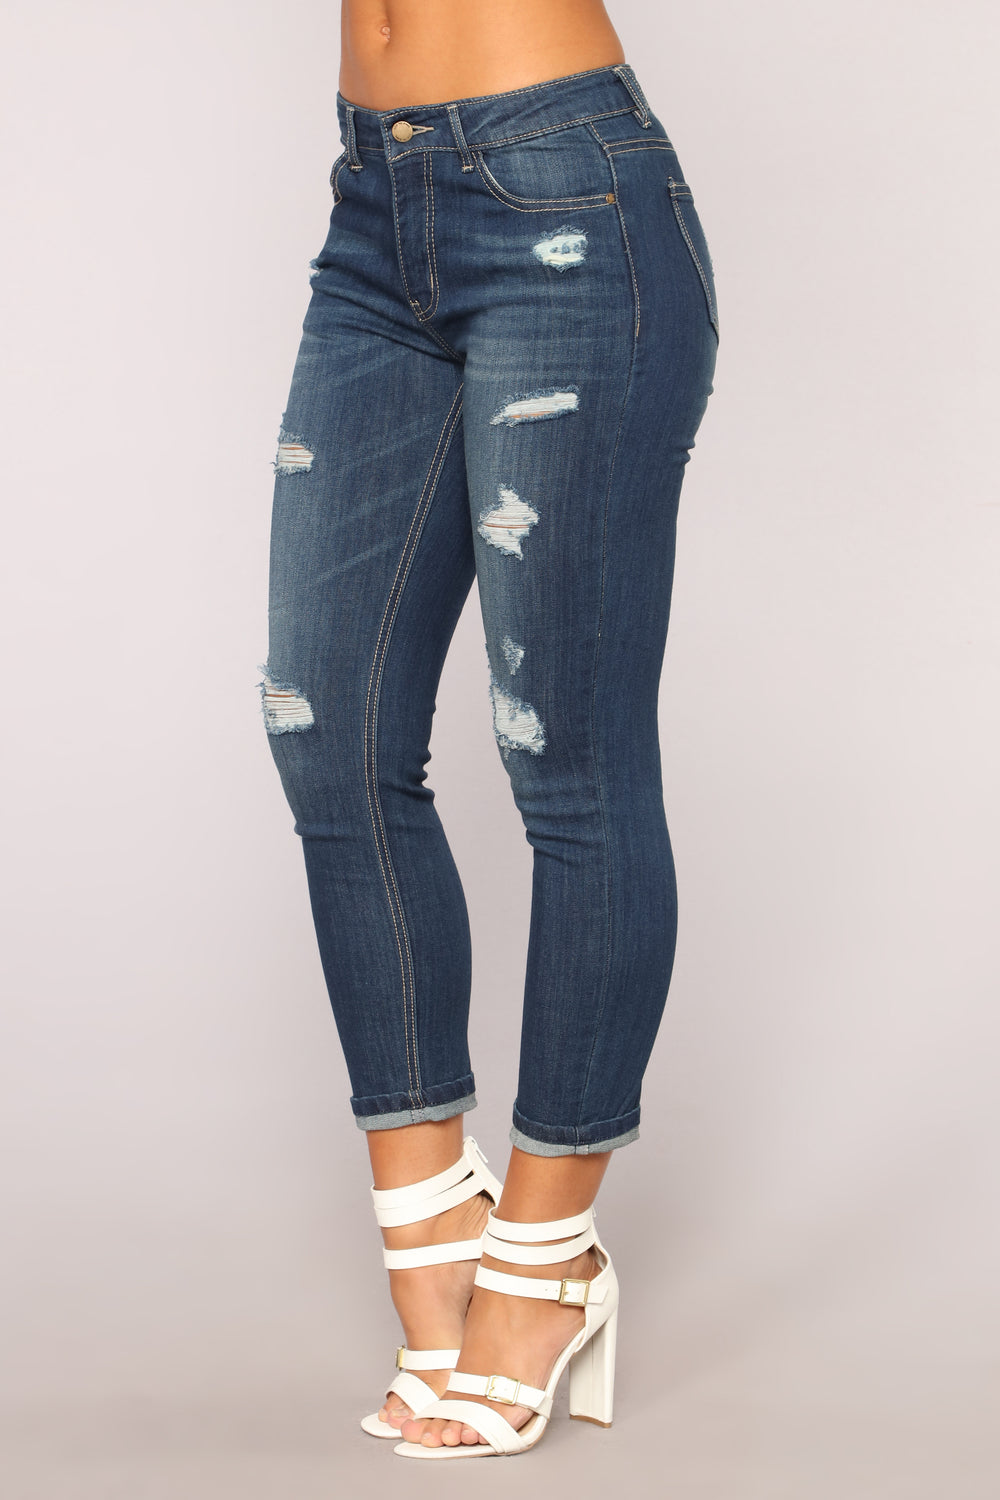 Follow Too Fast Relaxed Fit Jeans - Dark Denim